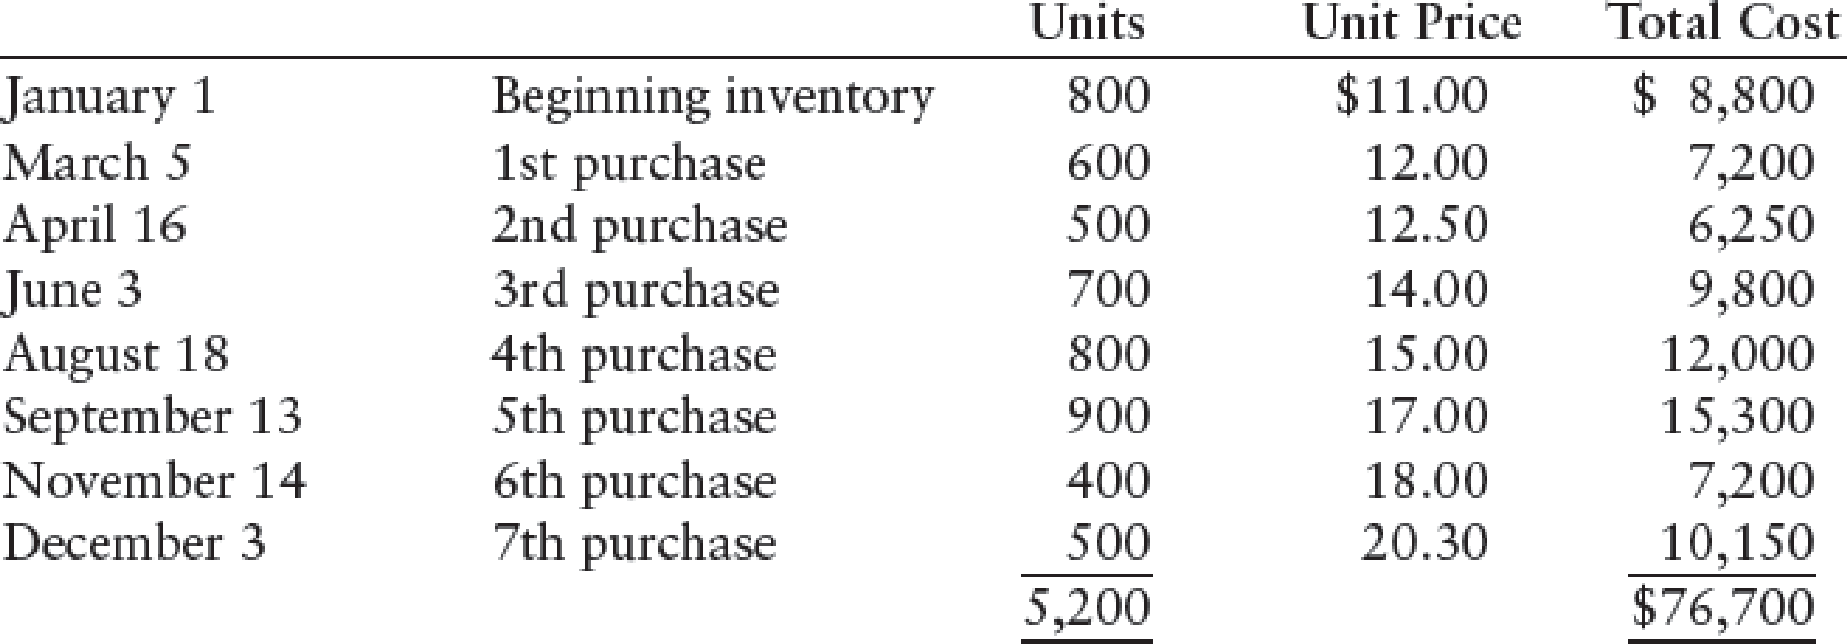 Chapter 13, Problem 7SPB, COST ALLOCATION AND LOWER-OF-COST-OR-MARKET Hall Companys beginning inventory and purchases during